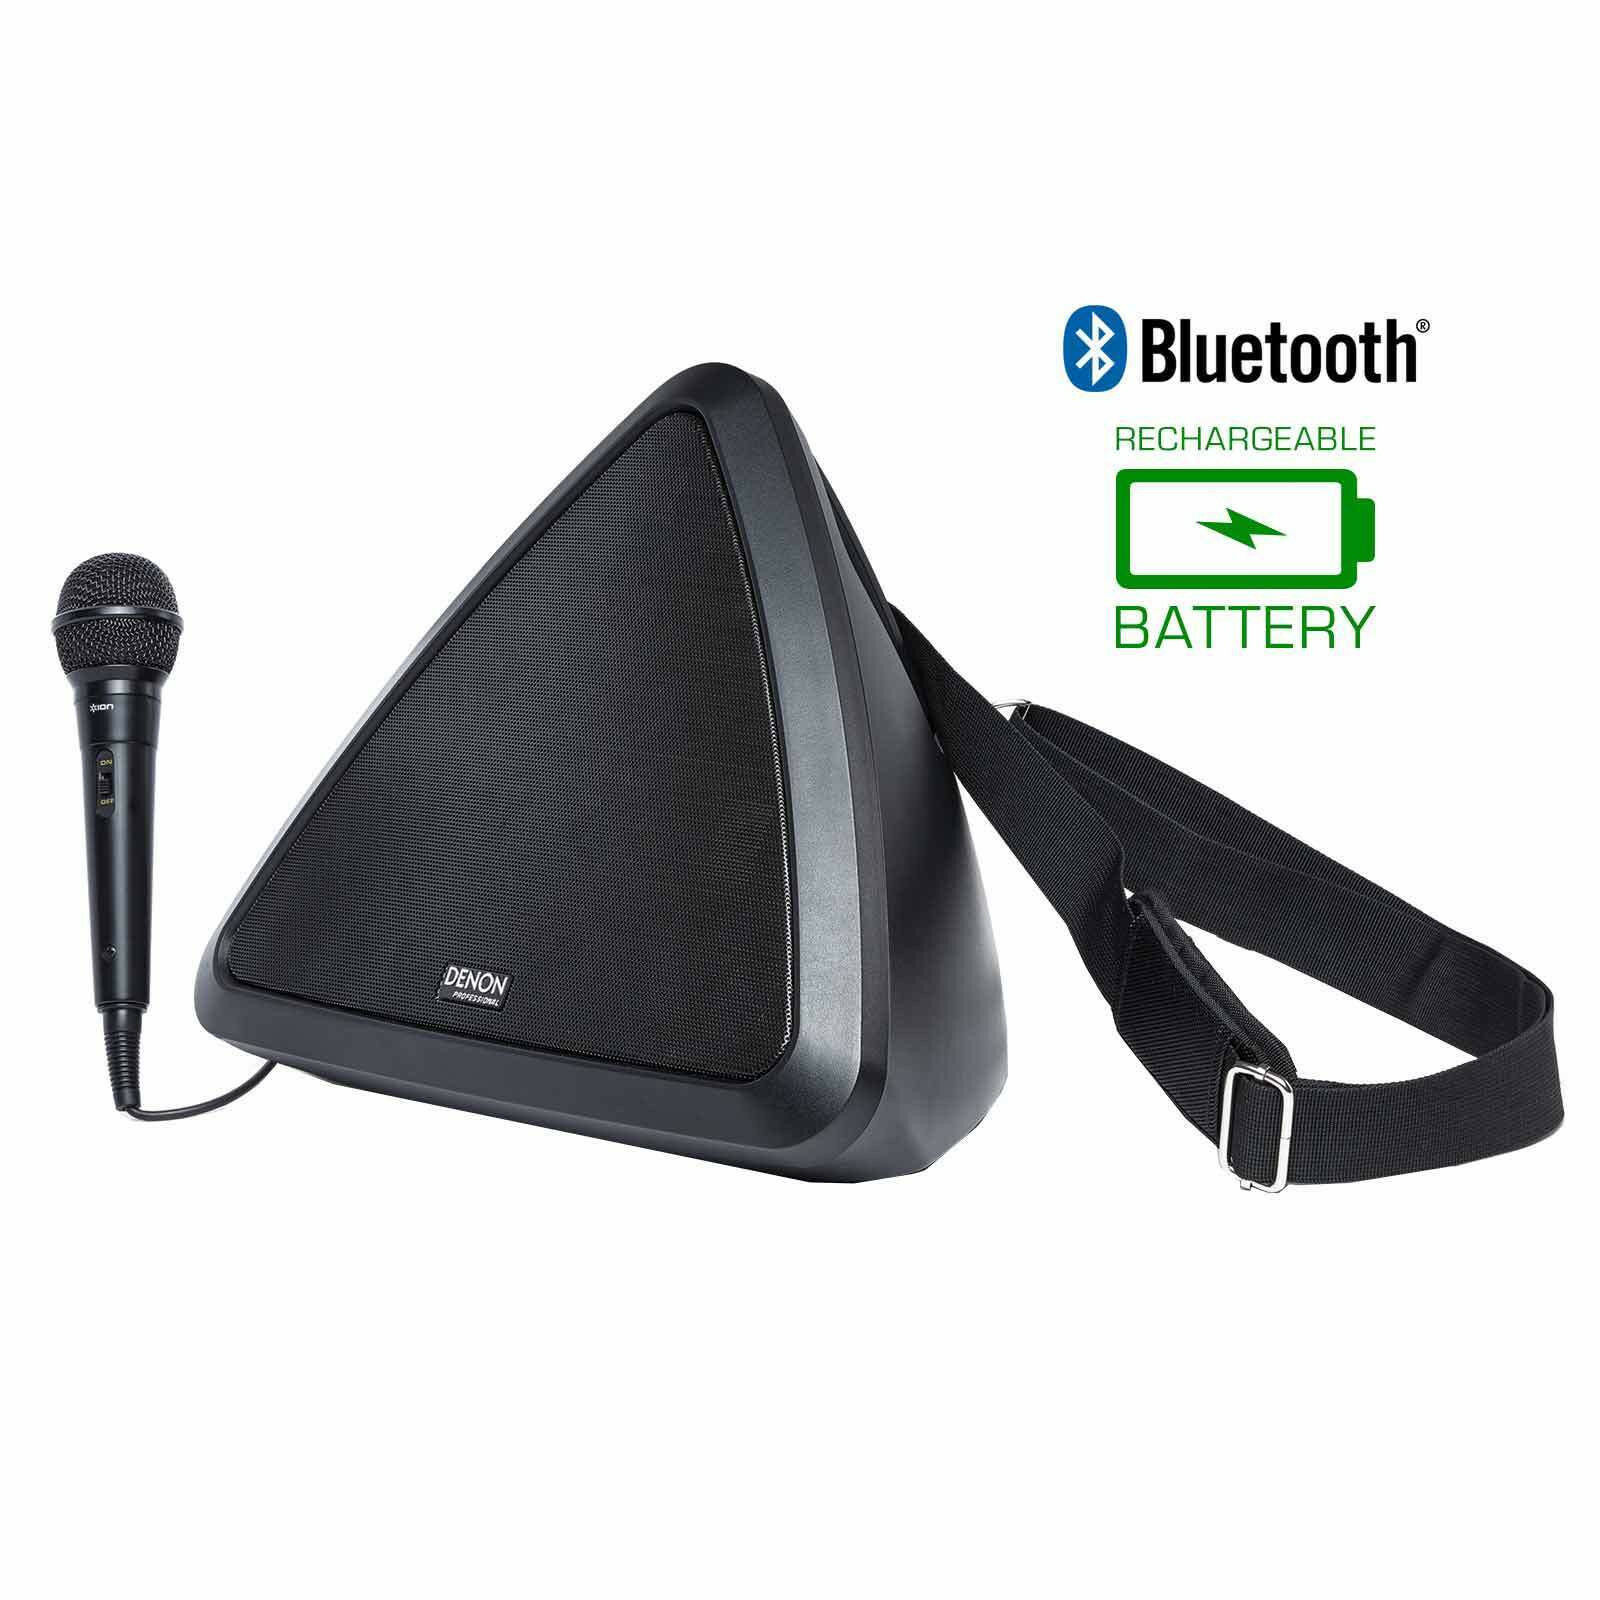 Denon Dispatch Mobile PA System with Blautooth